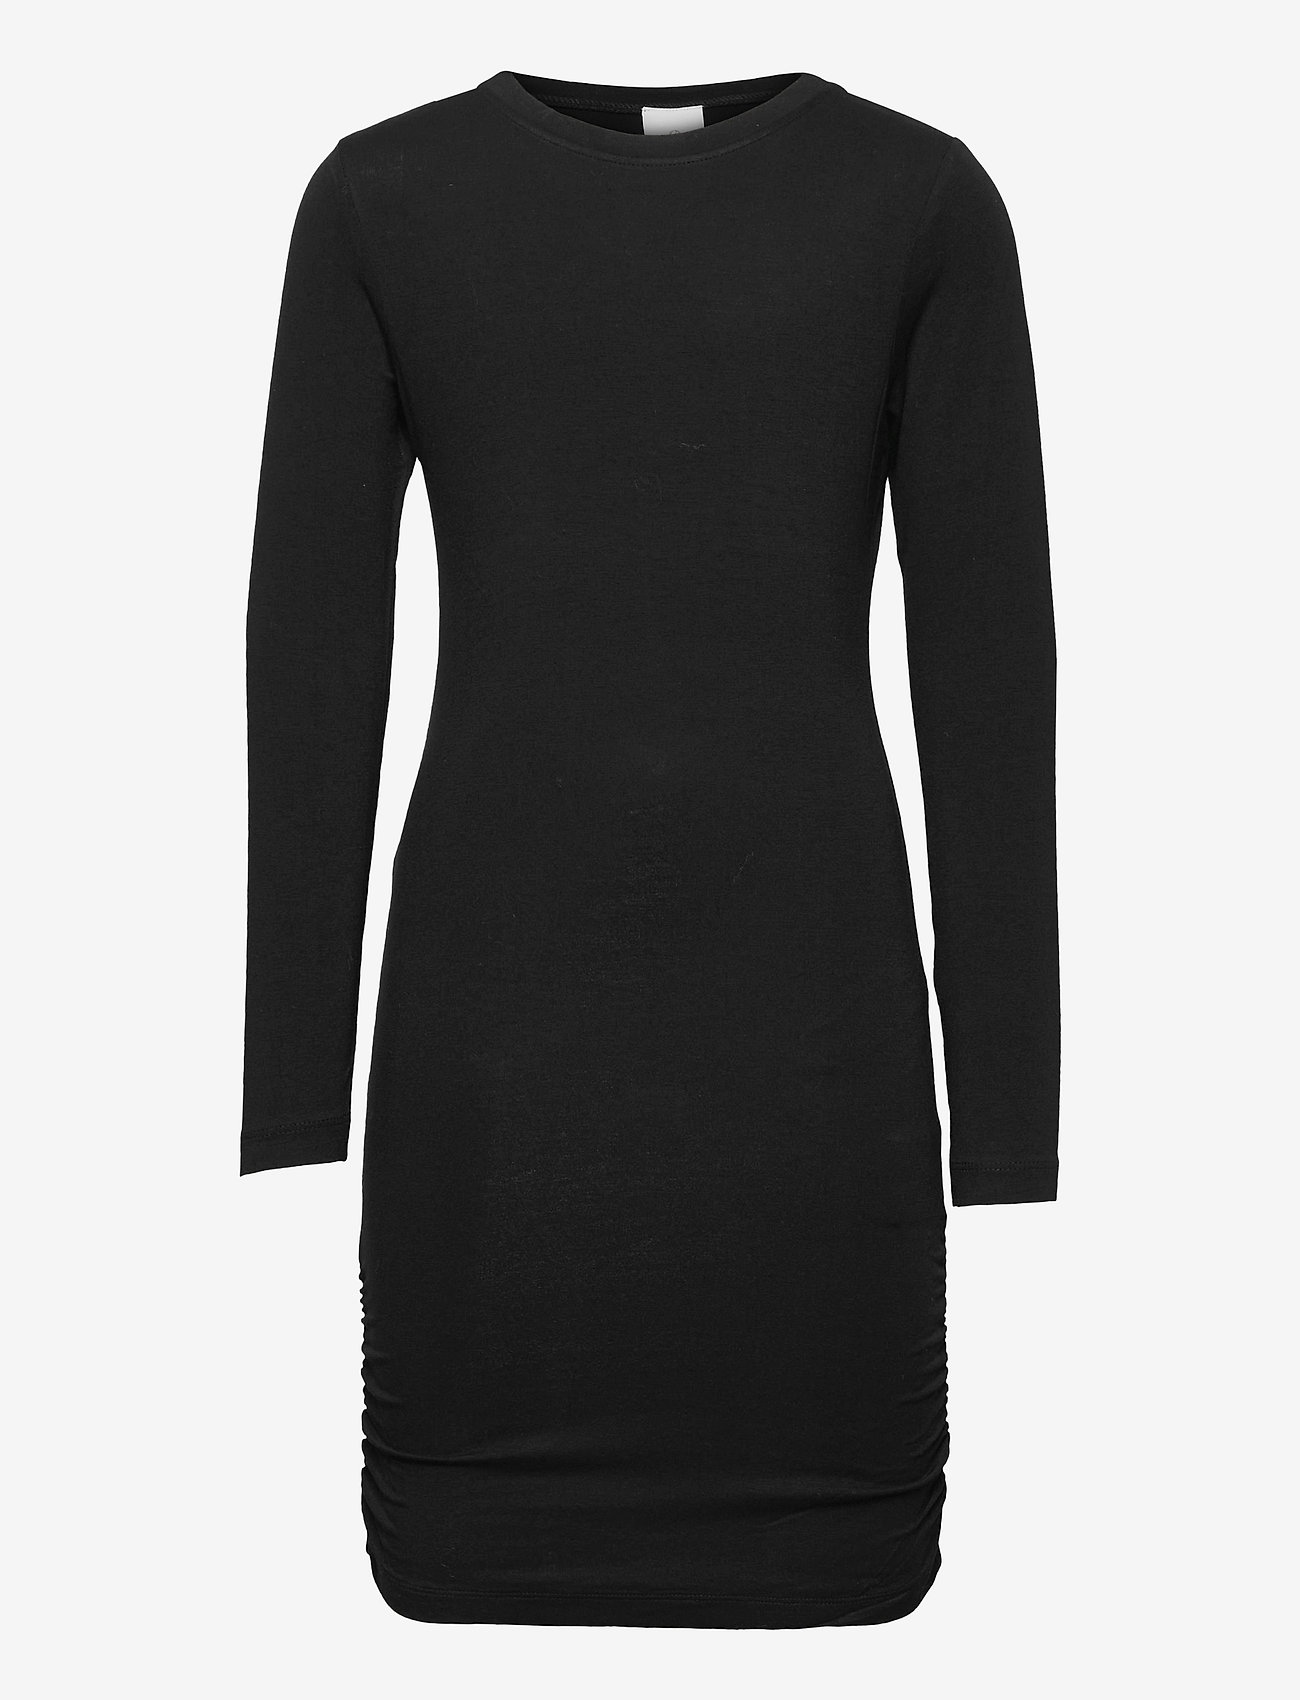 The New - BASIC L_S DRESS NOOS SUSTAINABLE - kleider - black - 0